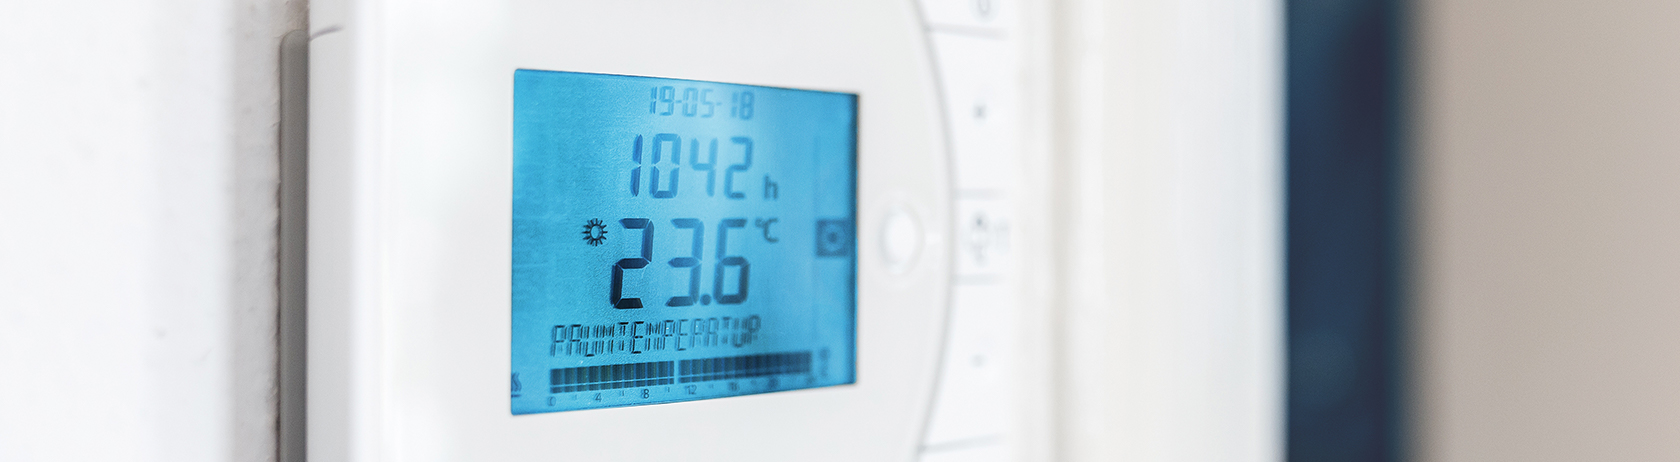 HVAC thermostat and control panel